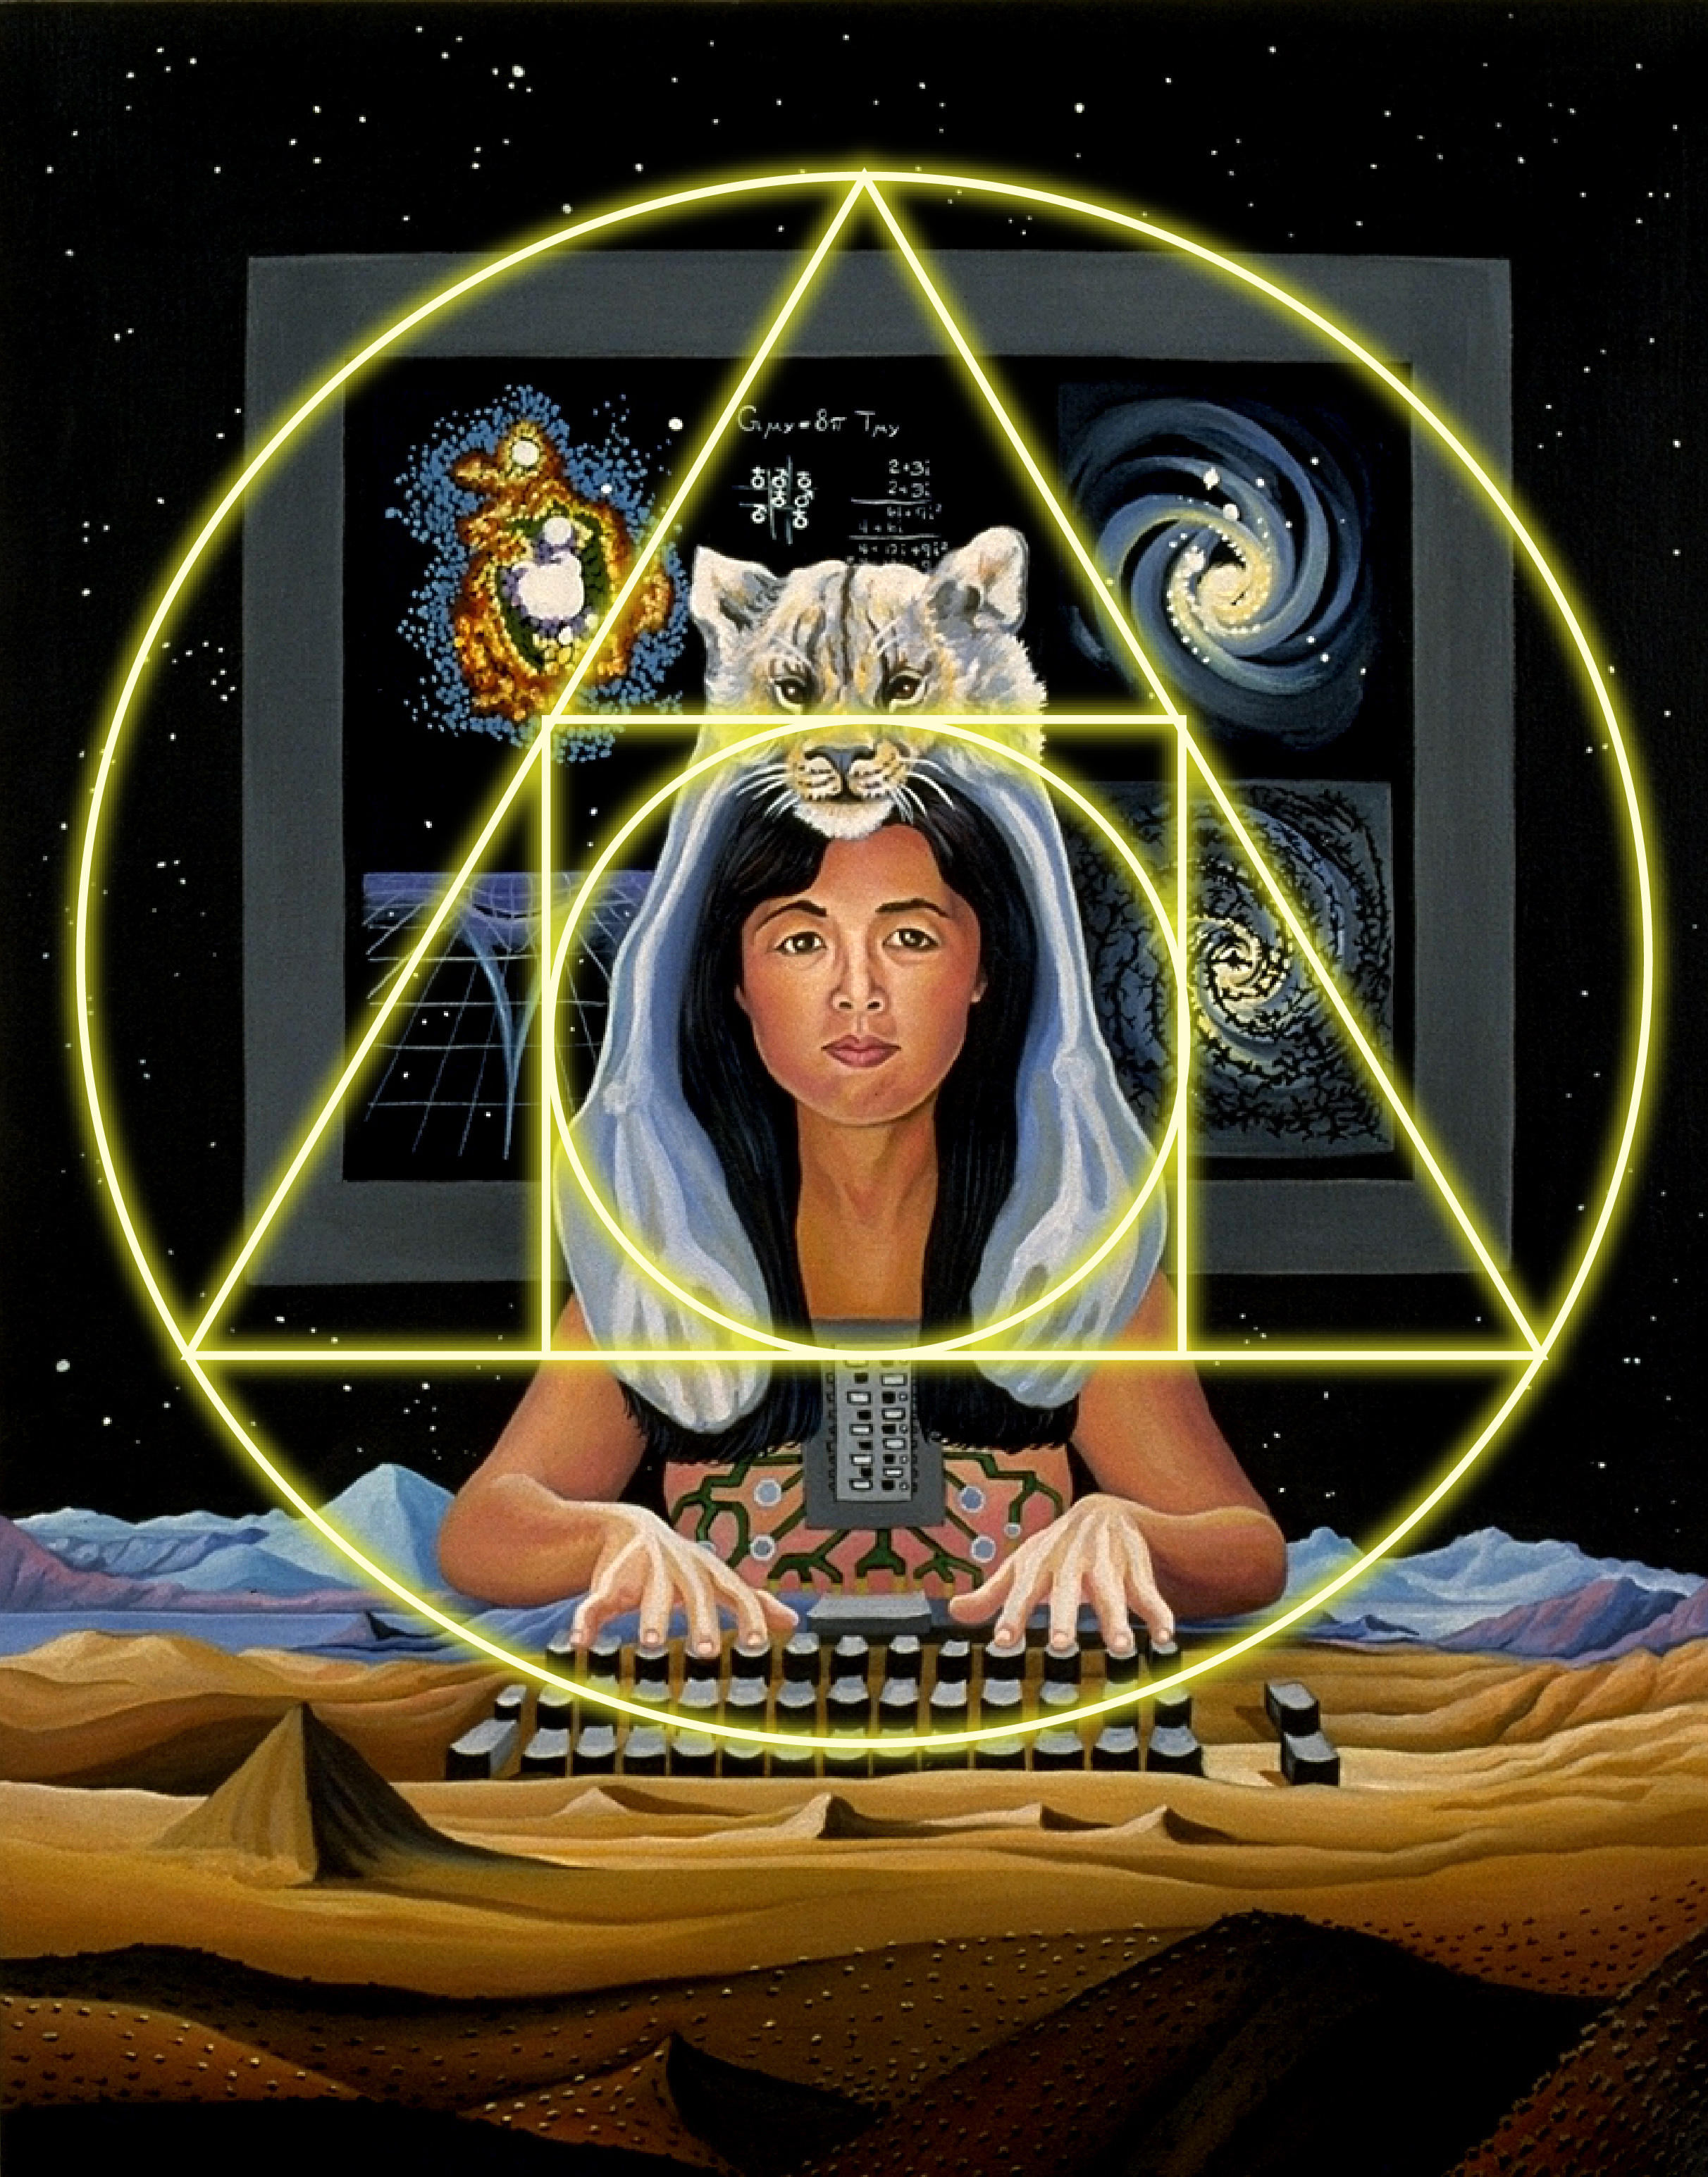 the cyborg alchemist philosophies i placed my human computer artist alchemist writer shamans scientist in the center and on the horizon line of a new canvas i put the dipswitches of the